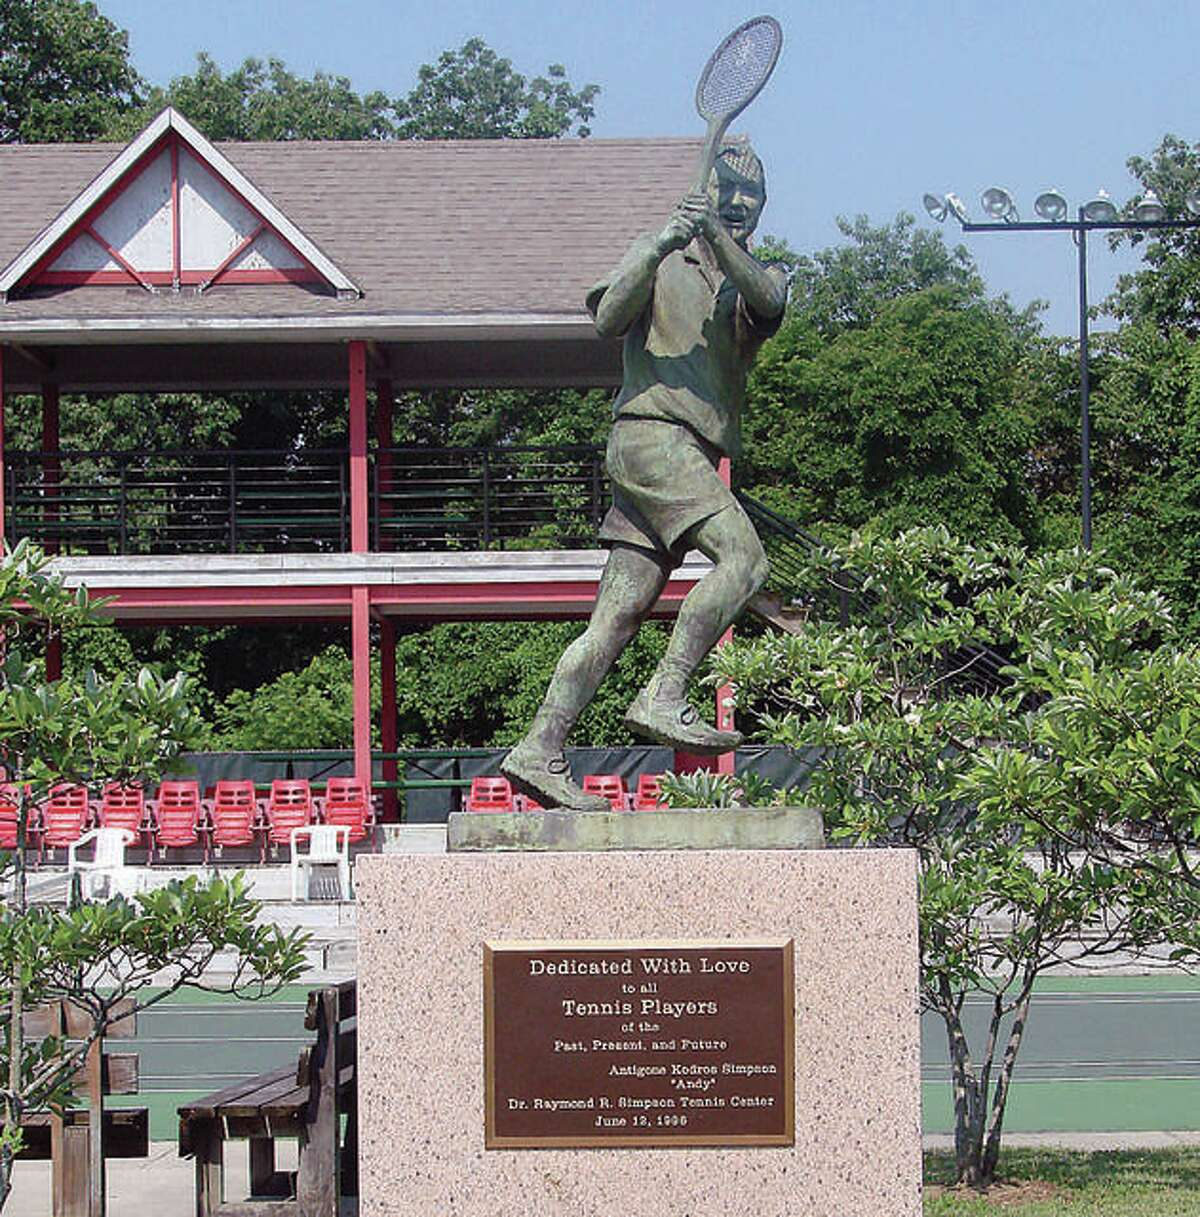 """A statue of the late Dr. Raymond """"Bud' Simpson stands at the tennis center that bears his name in Gordon Moore Park."""